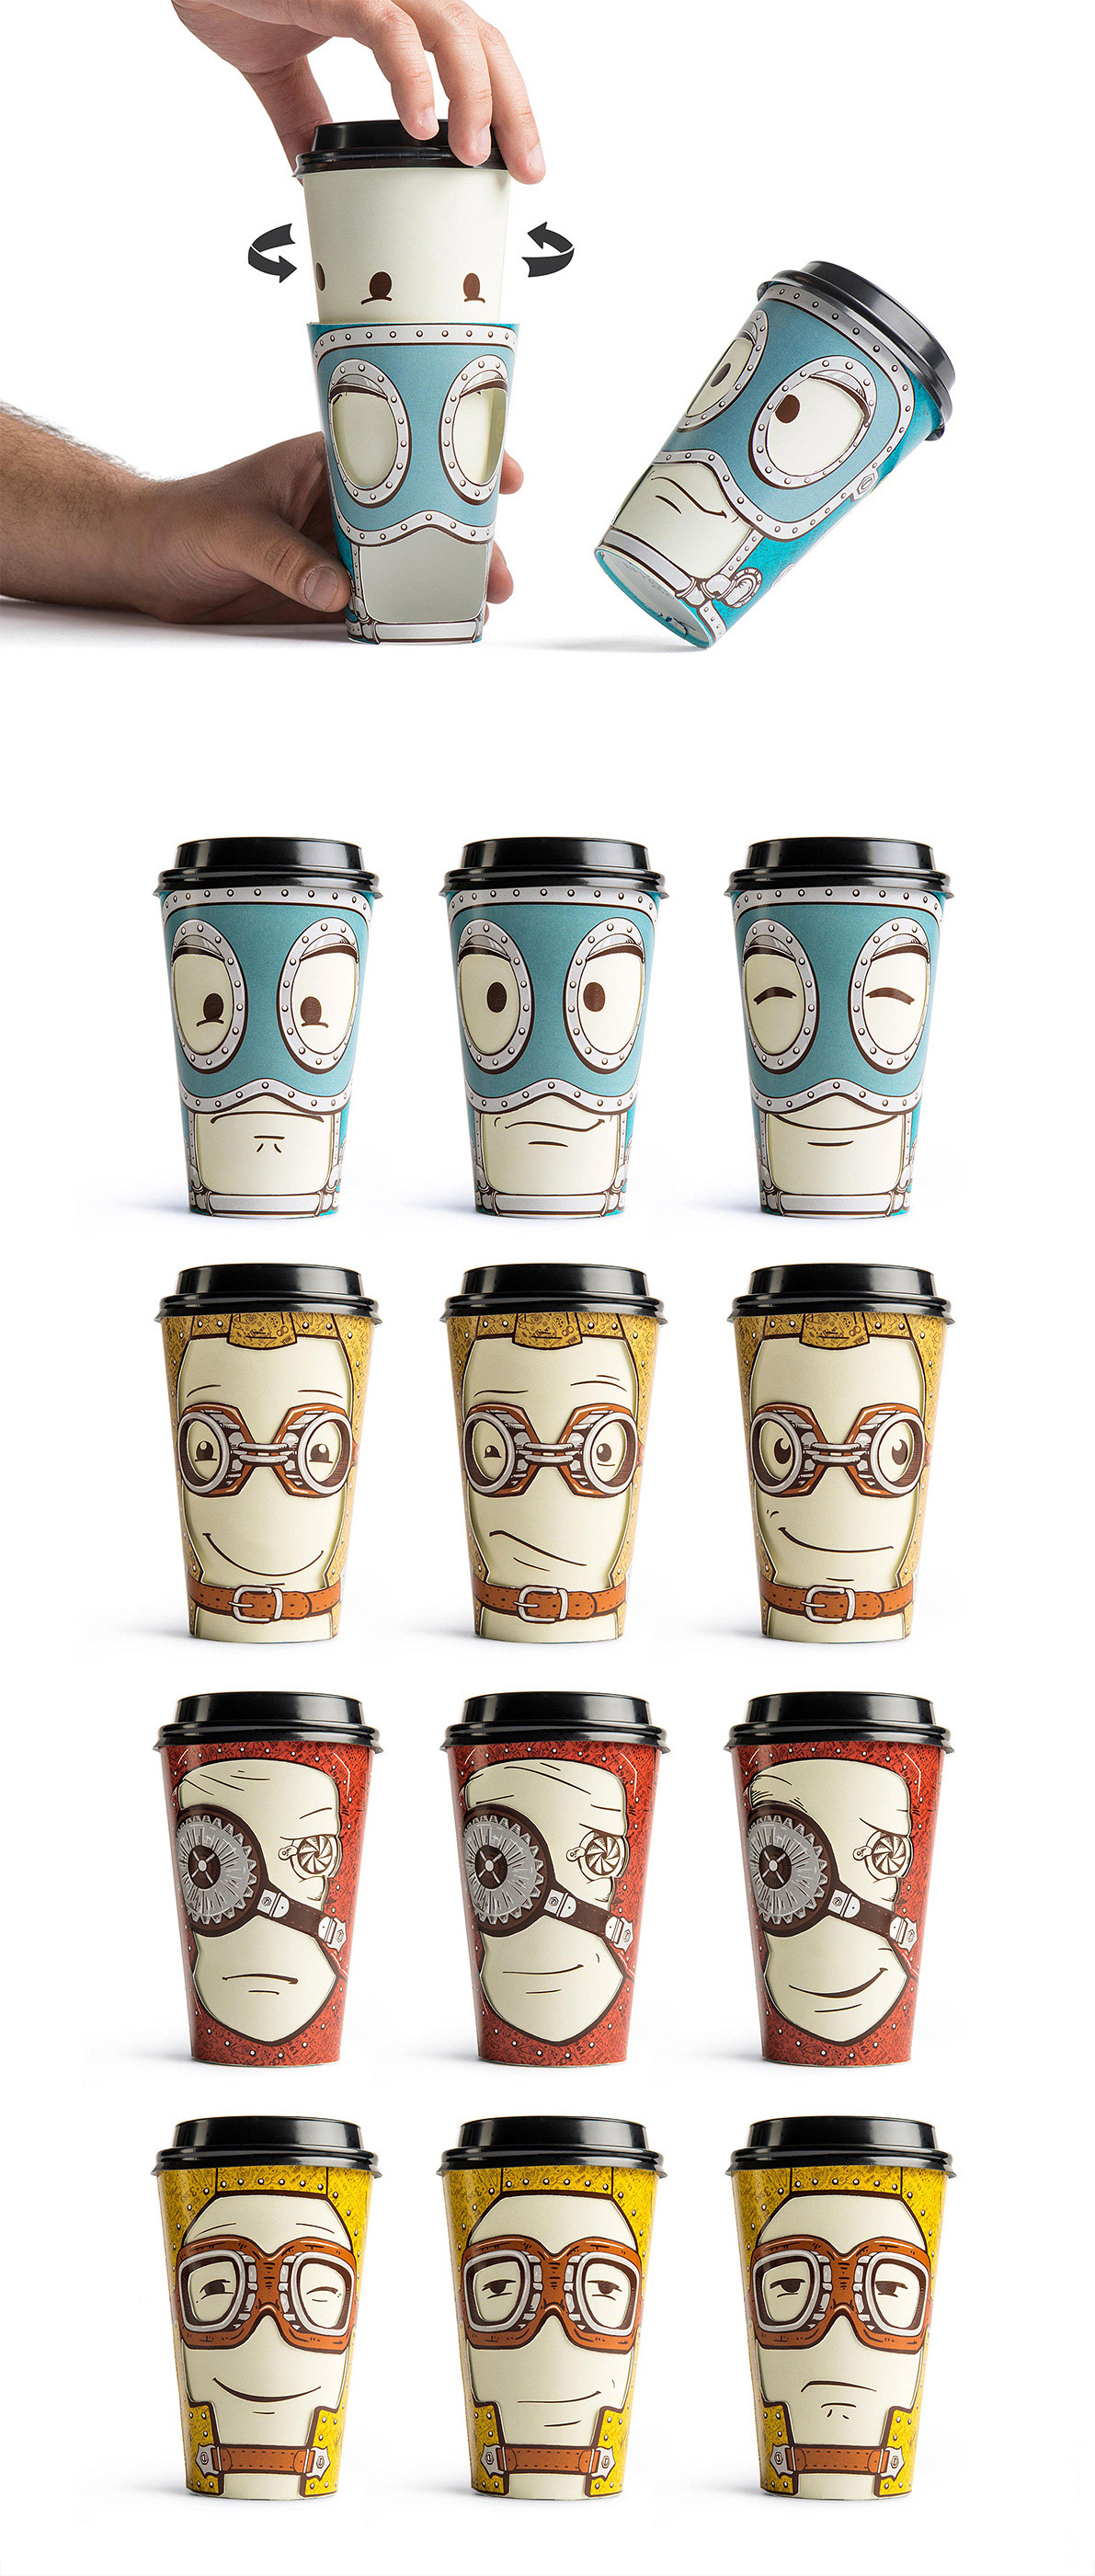 cups emotions face expression mood